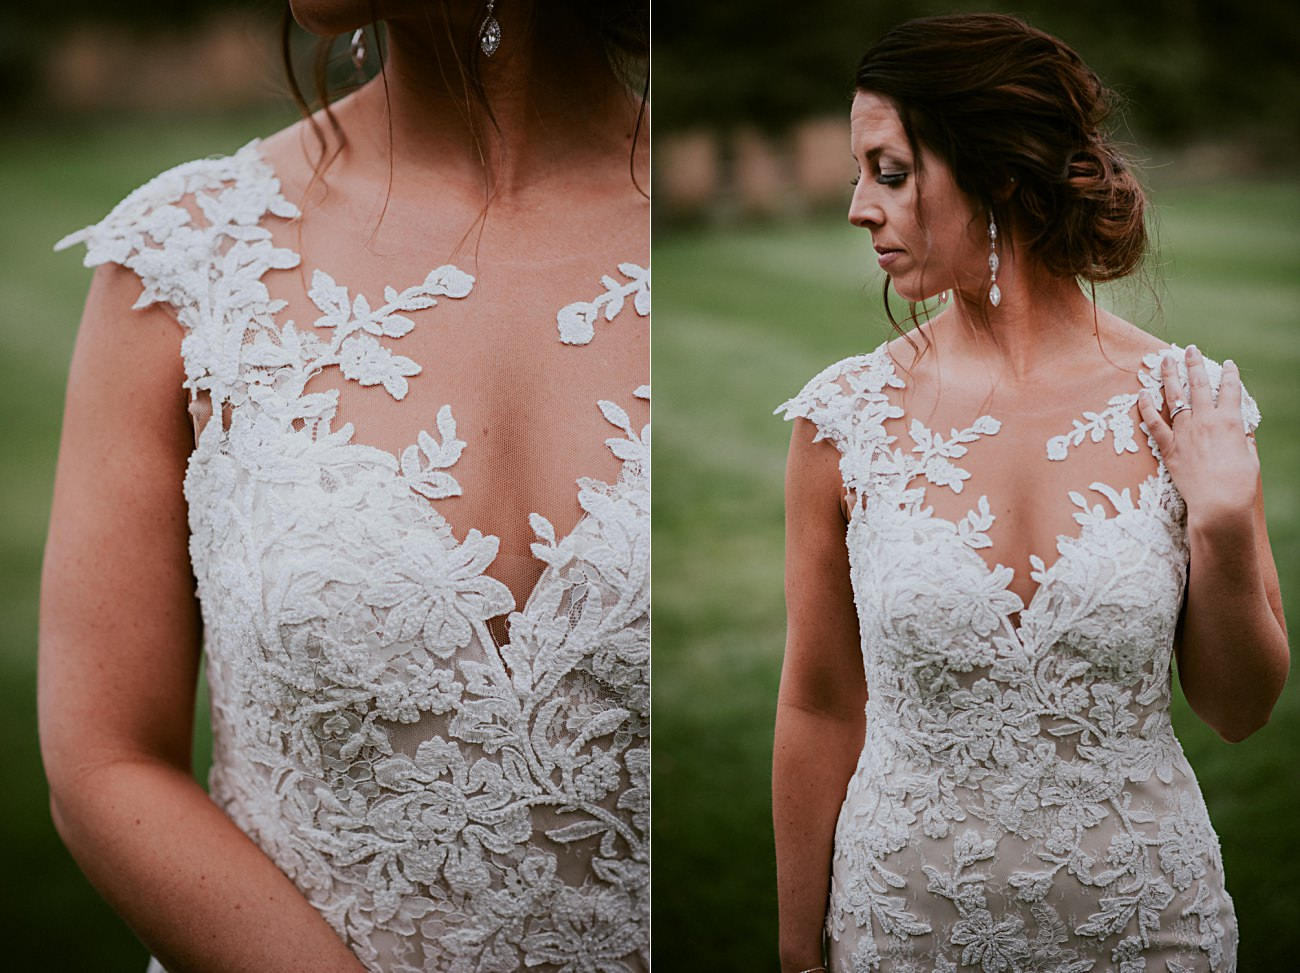 Wisconsin Dells Wedding,, Lace Wedding Dress, Madison WI Photographer,, Bride and Groom Photos, Grey suit for groom